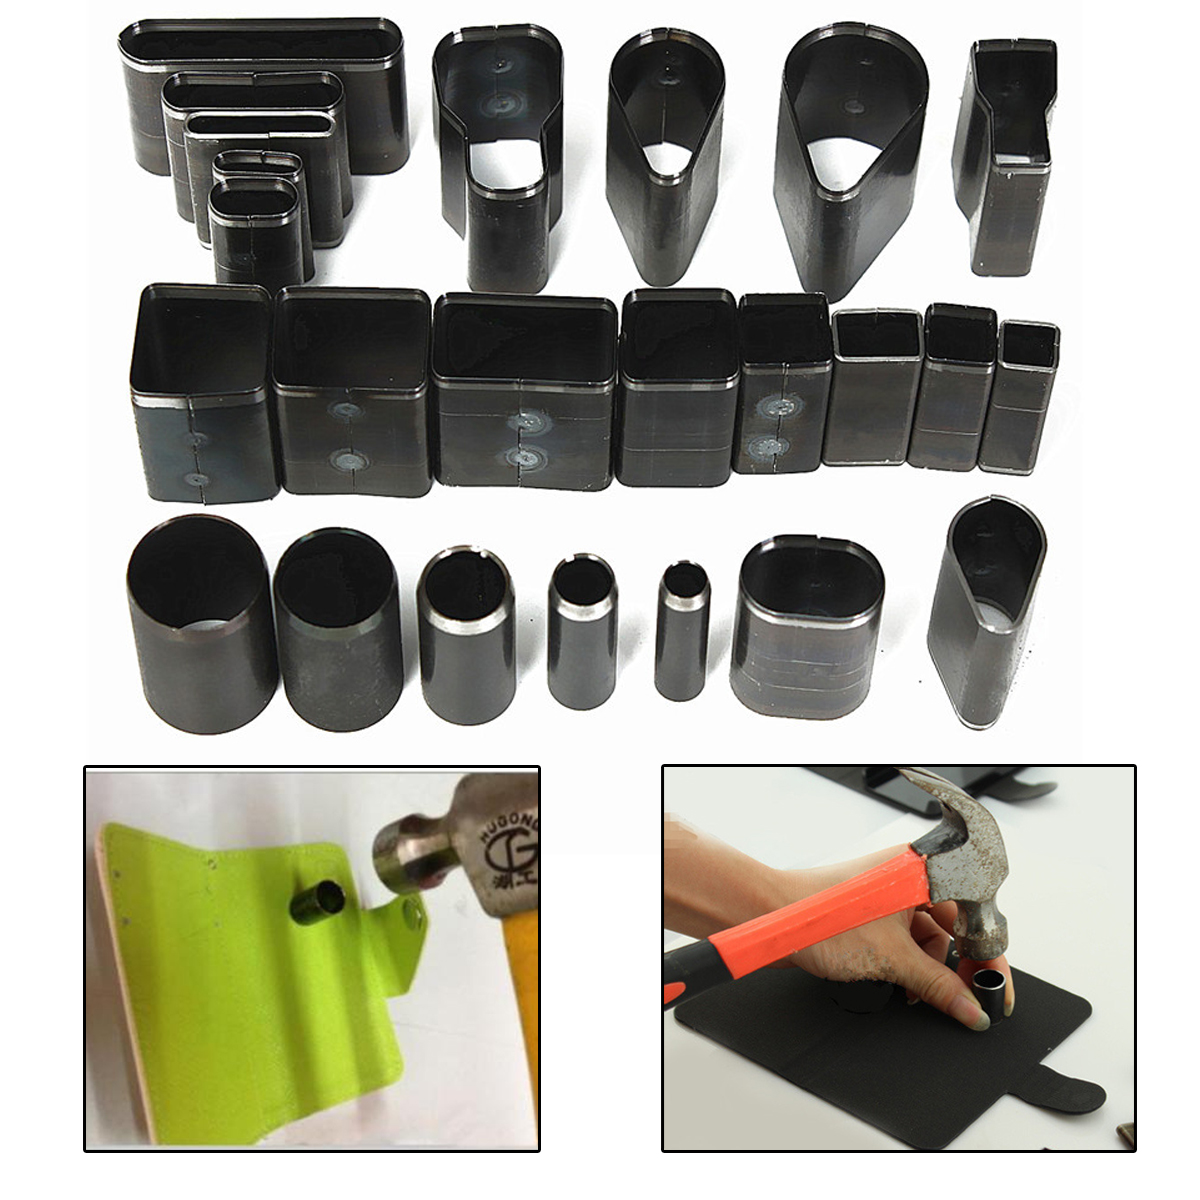 24pcs/set 24 Shape Styles Hole Hollow Cutter Punch Set For Handmade Leather Craft DIY Tool For Making Cellphone Holster